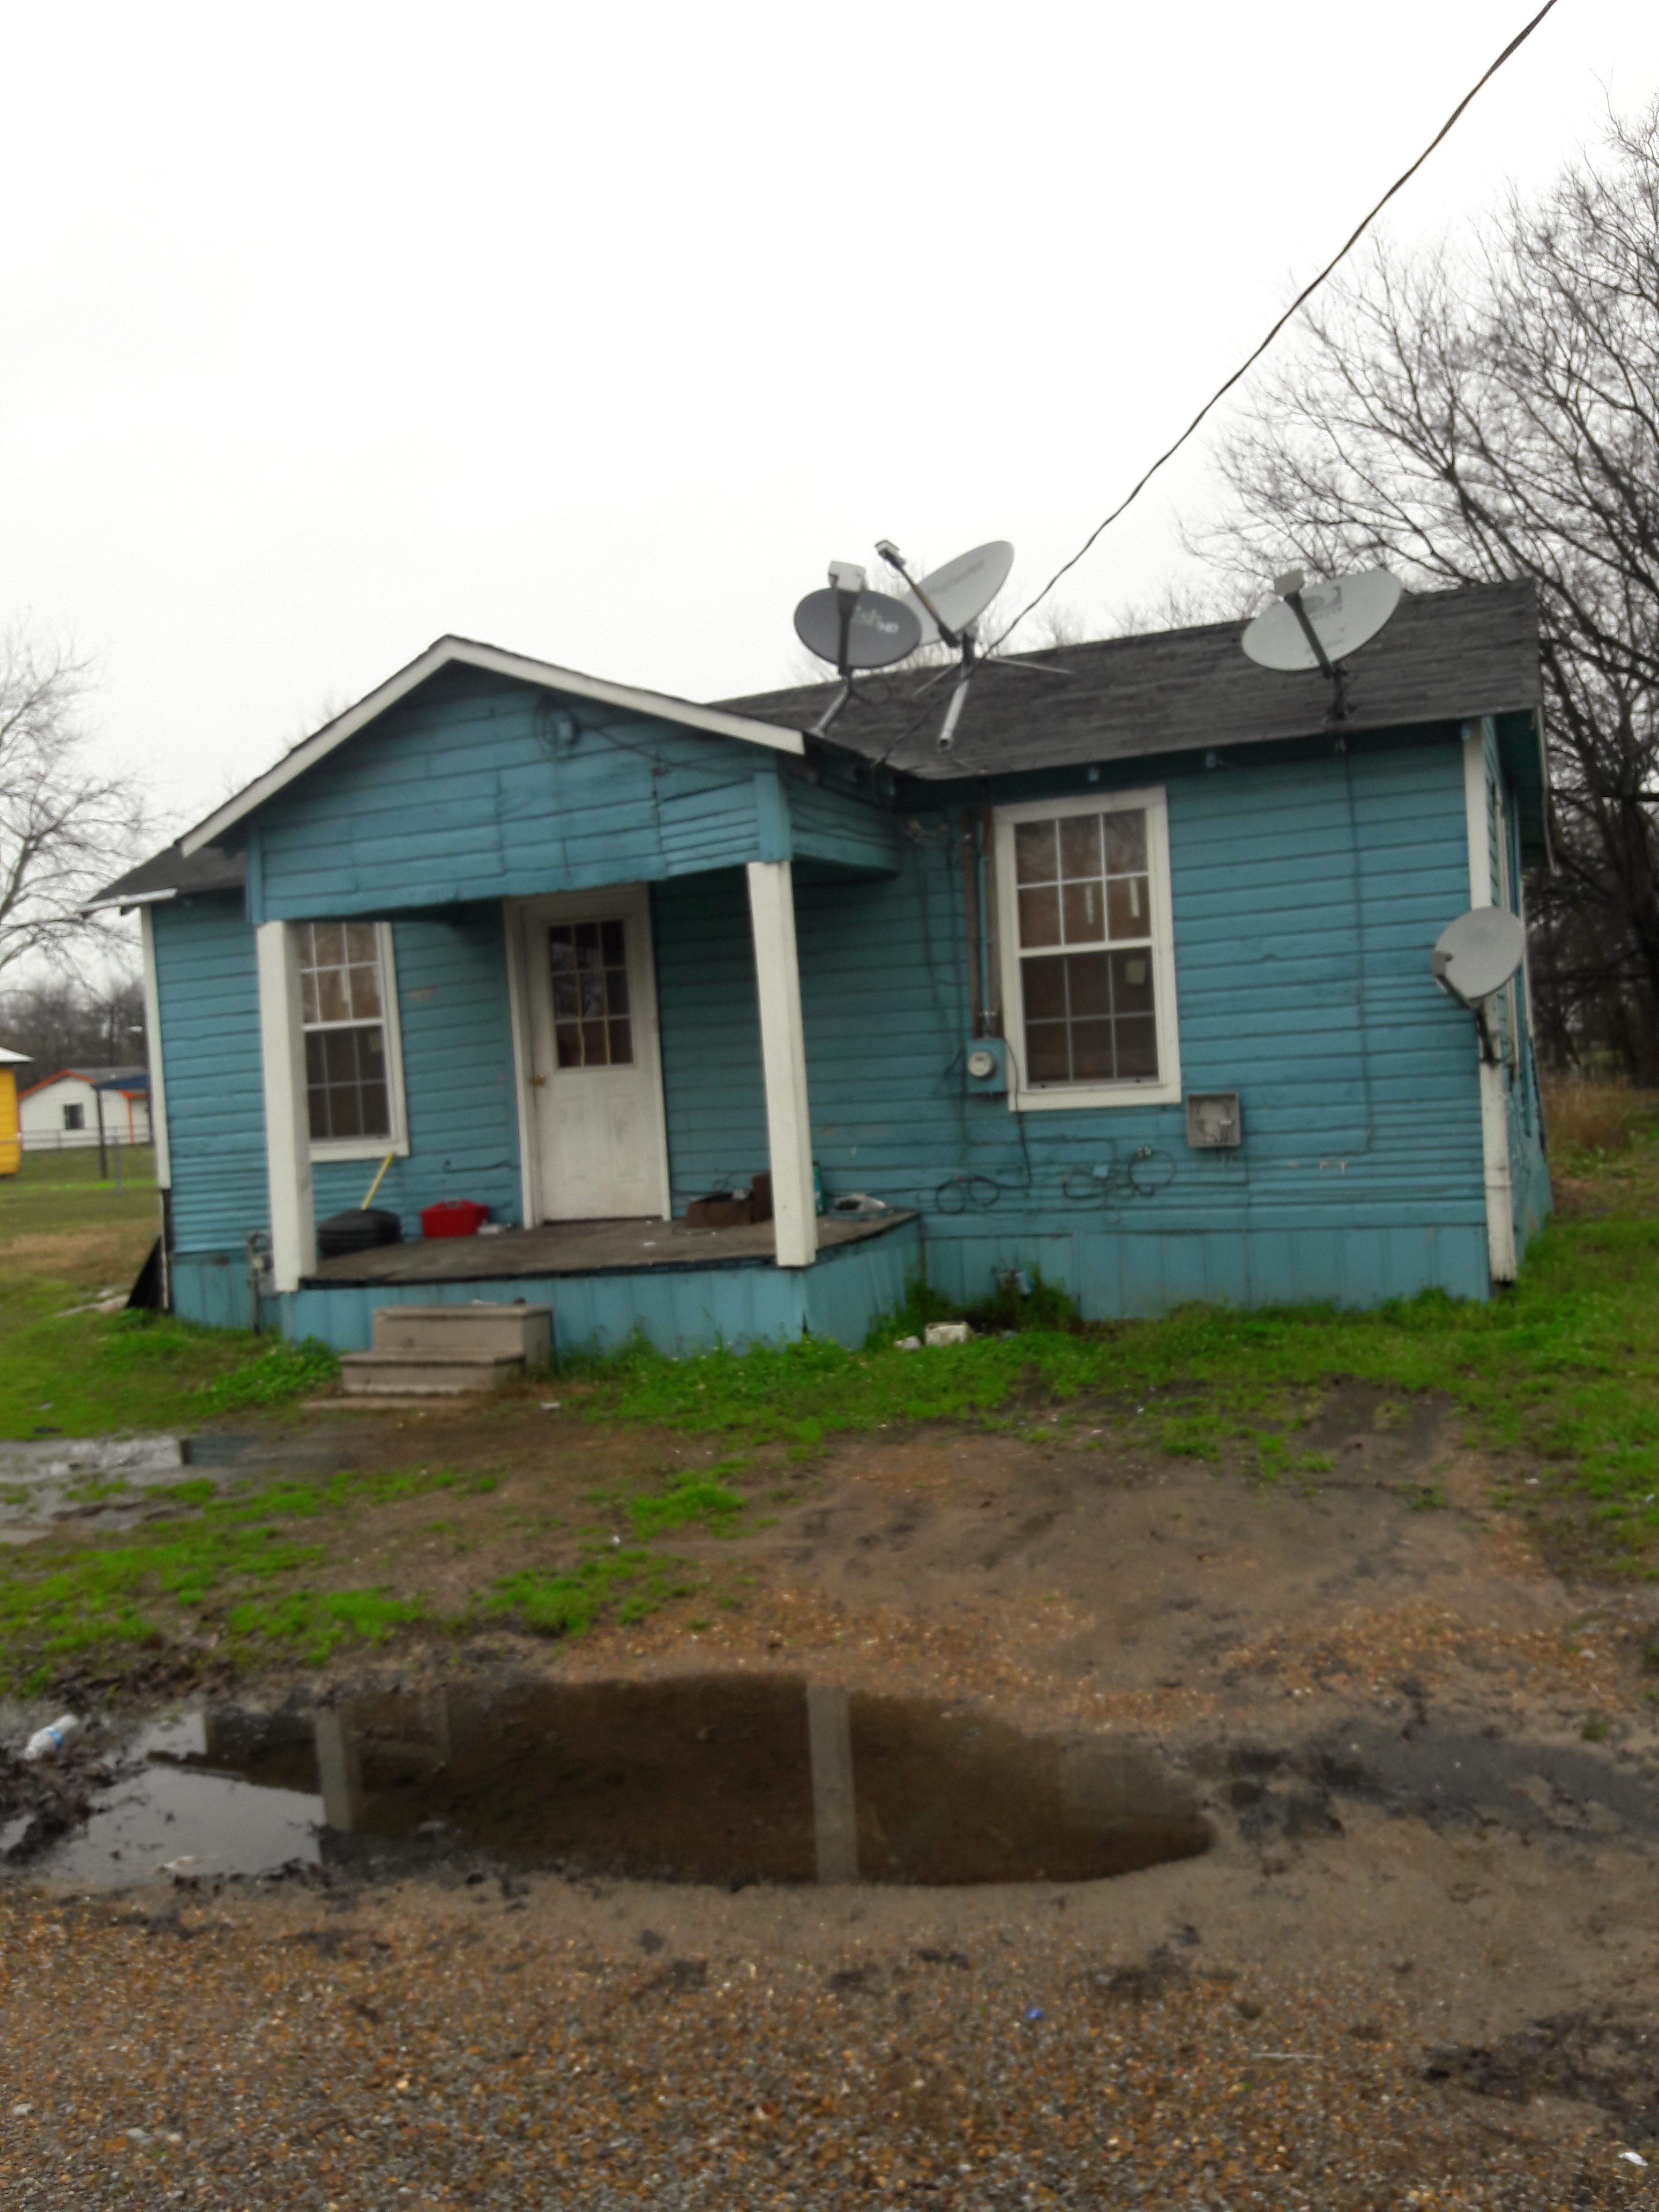 A clapboard-sided blue house with a small porch sitting behind a dirt yard with pooling water.